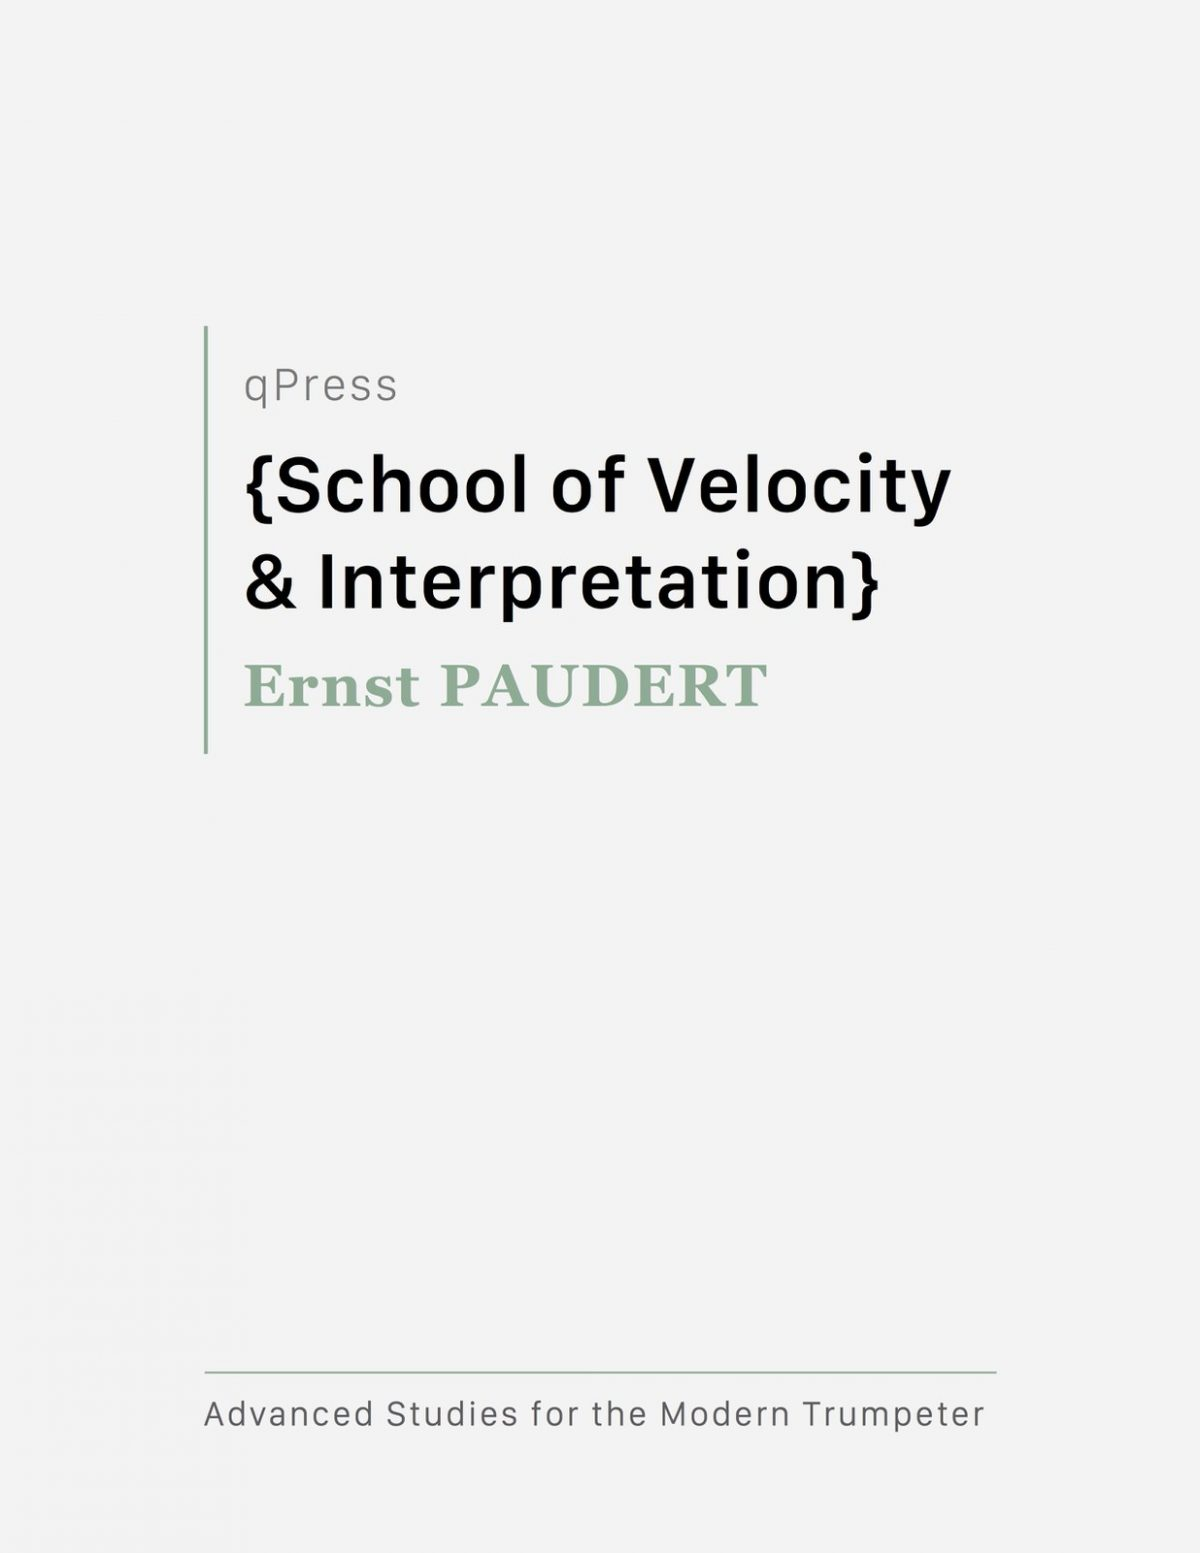 Paudert, School of Velocity and Interpretation-p01